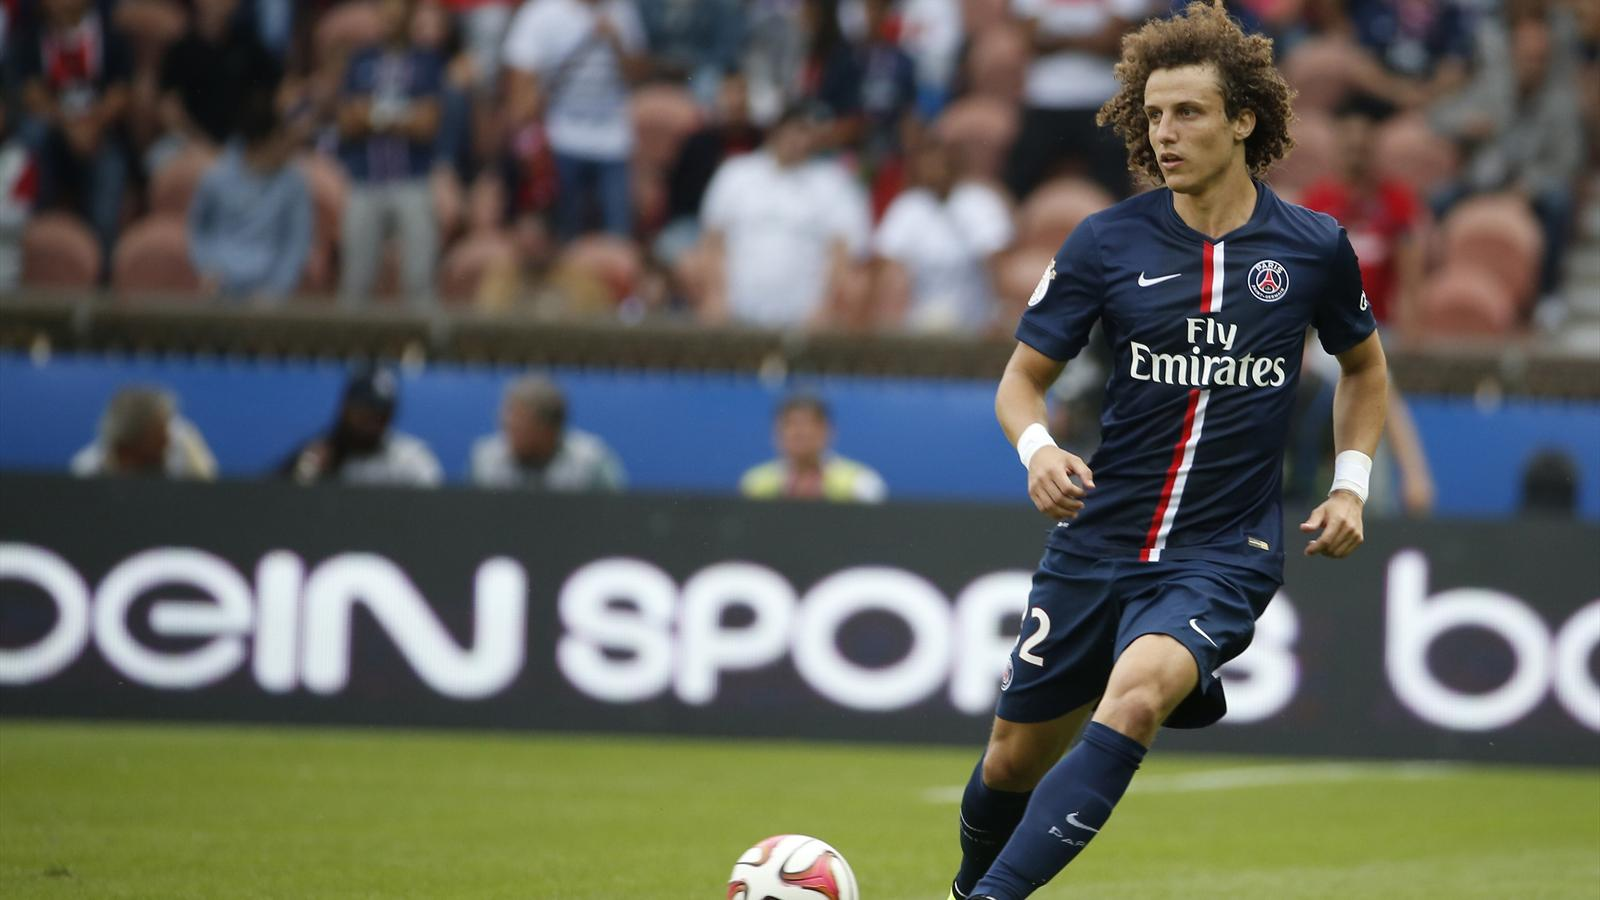 David Luiz lors de son premier match officiel avec le PSG, contre Bastia